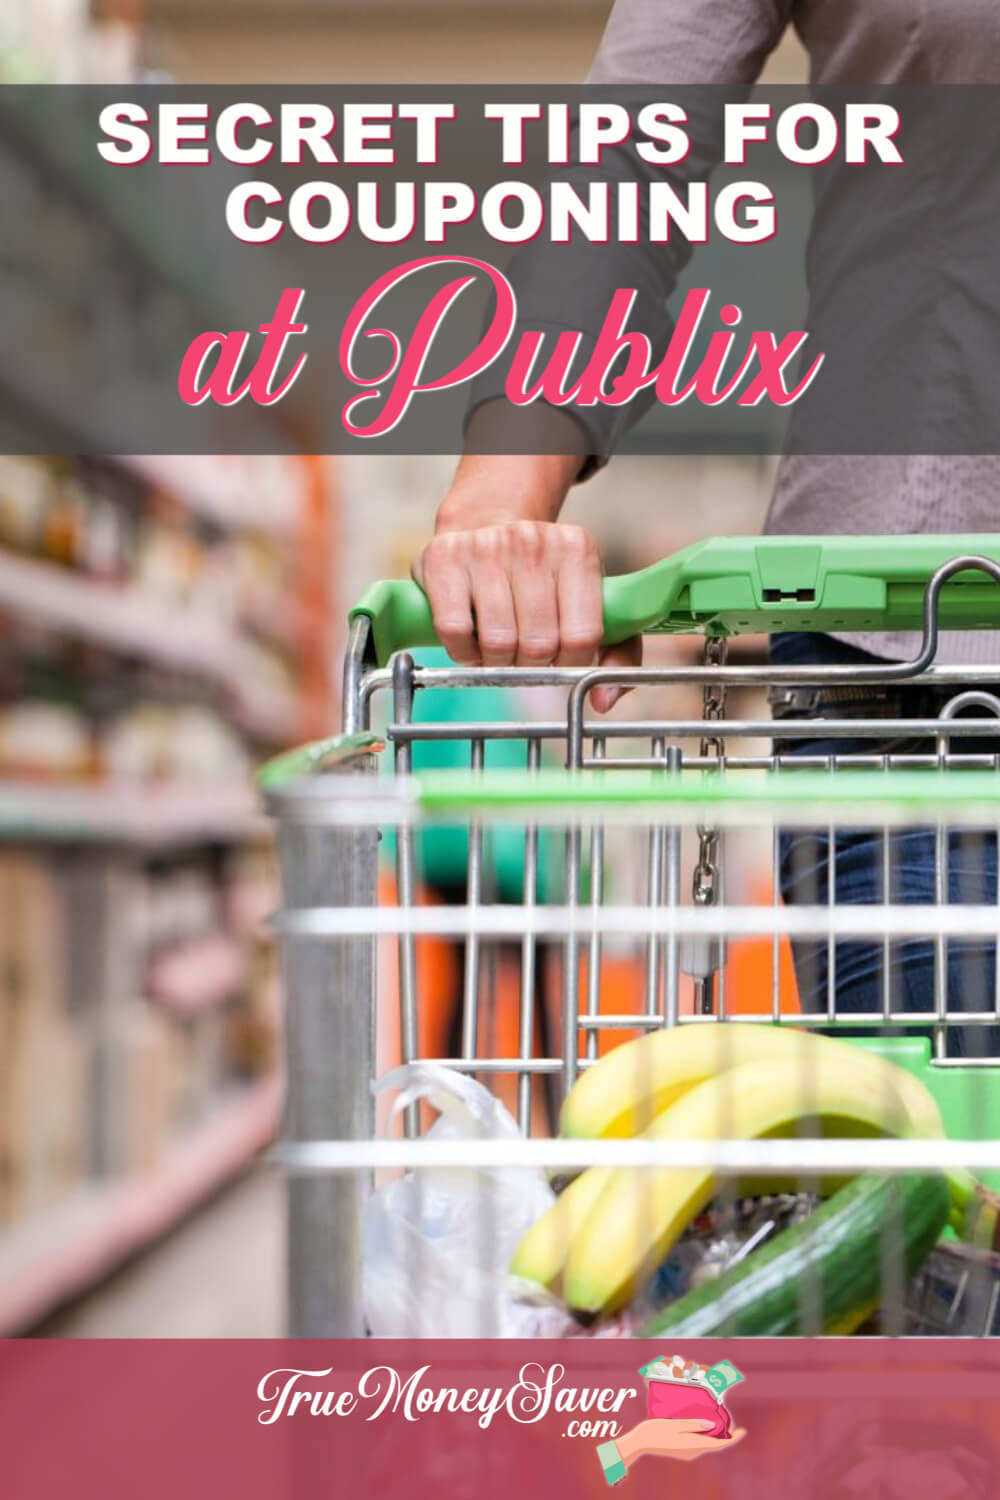 In addition to Publix BOGOs, there are many secrets to saving at Publix that you may not know. Check out these secret savings tips to save more at Publix! #couponcommunity #publix #savingmoney #truecouponing #debtfree